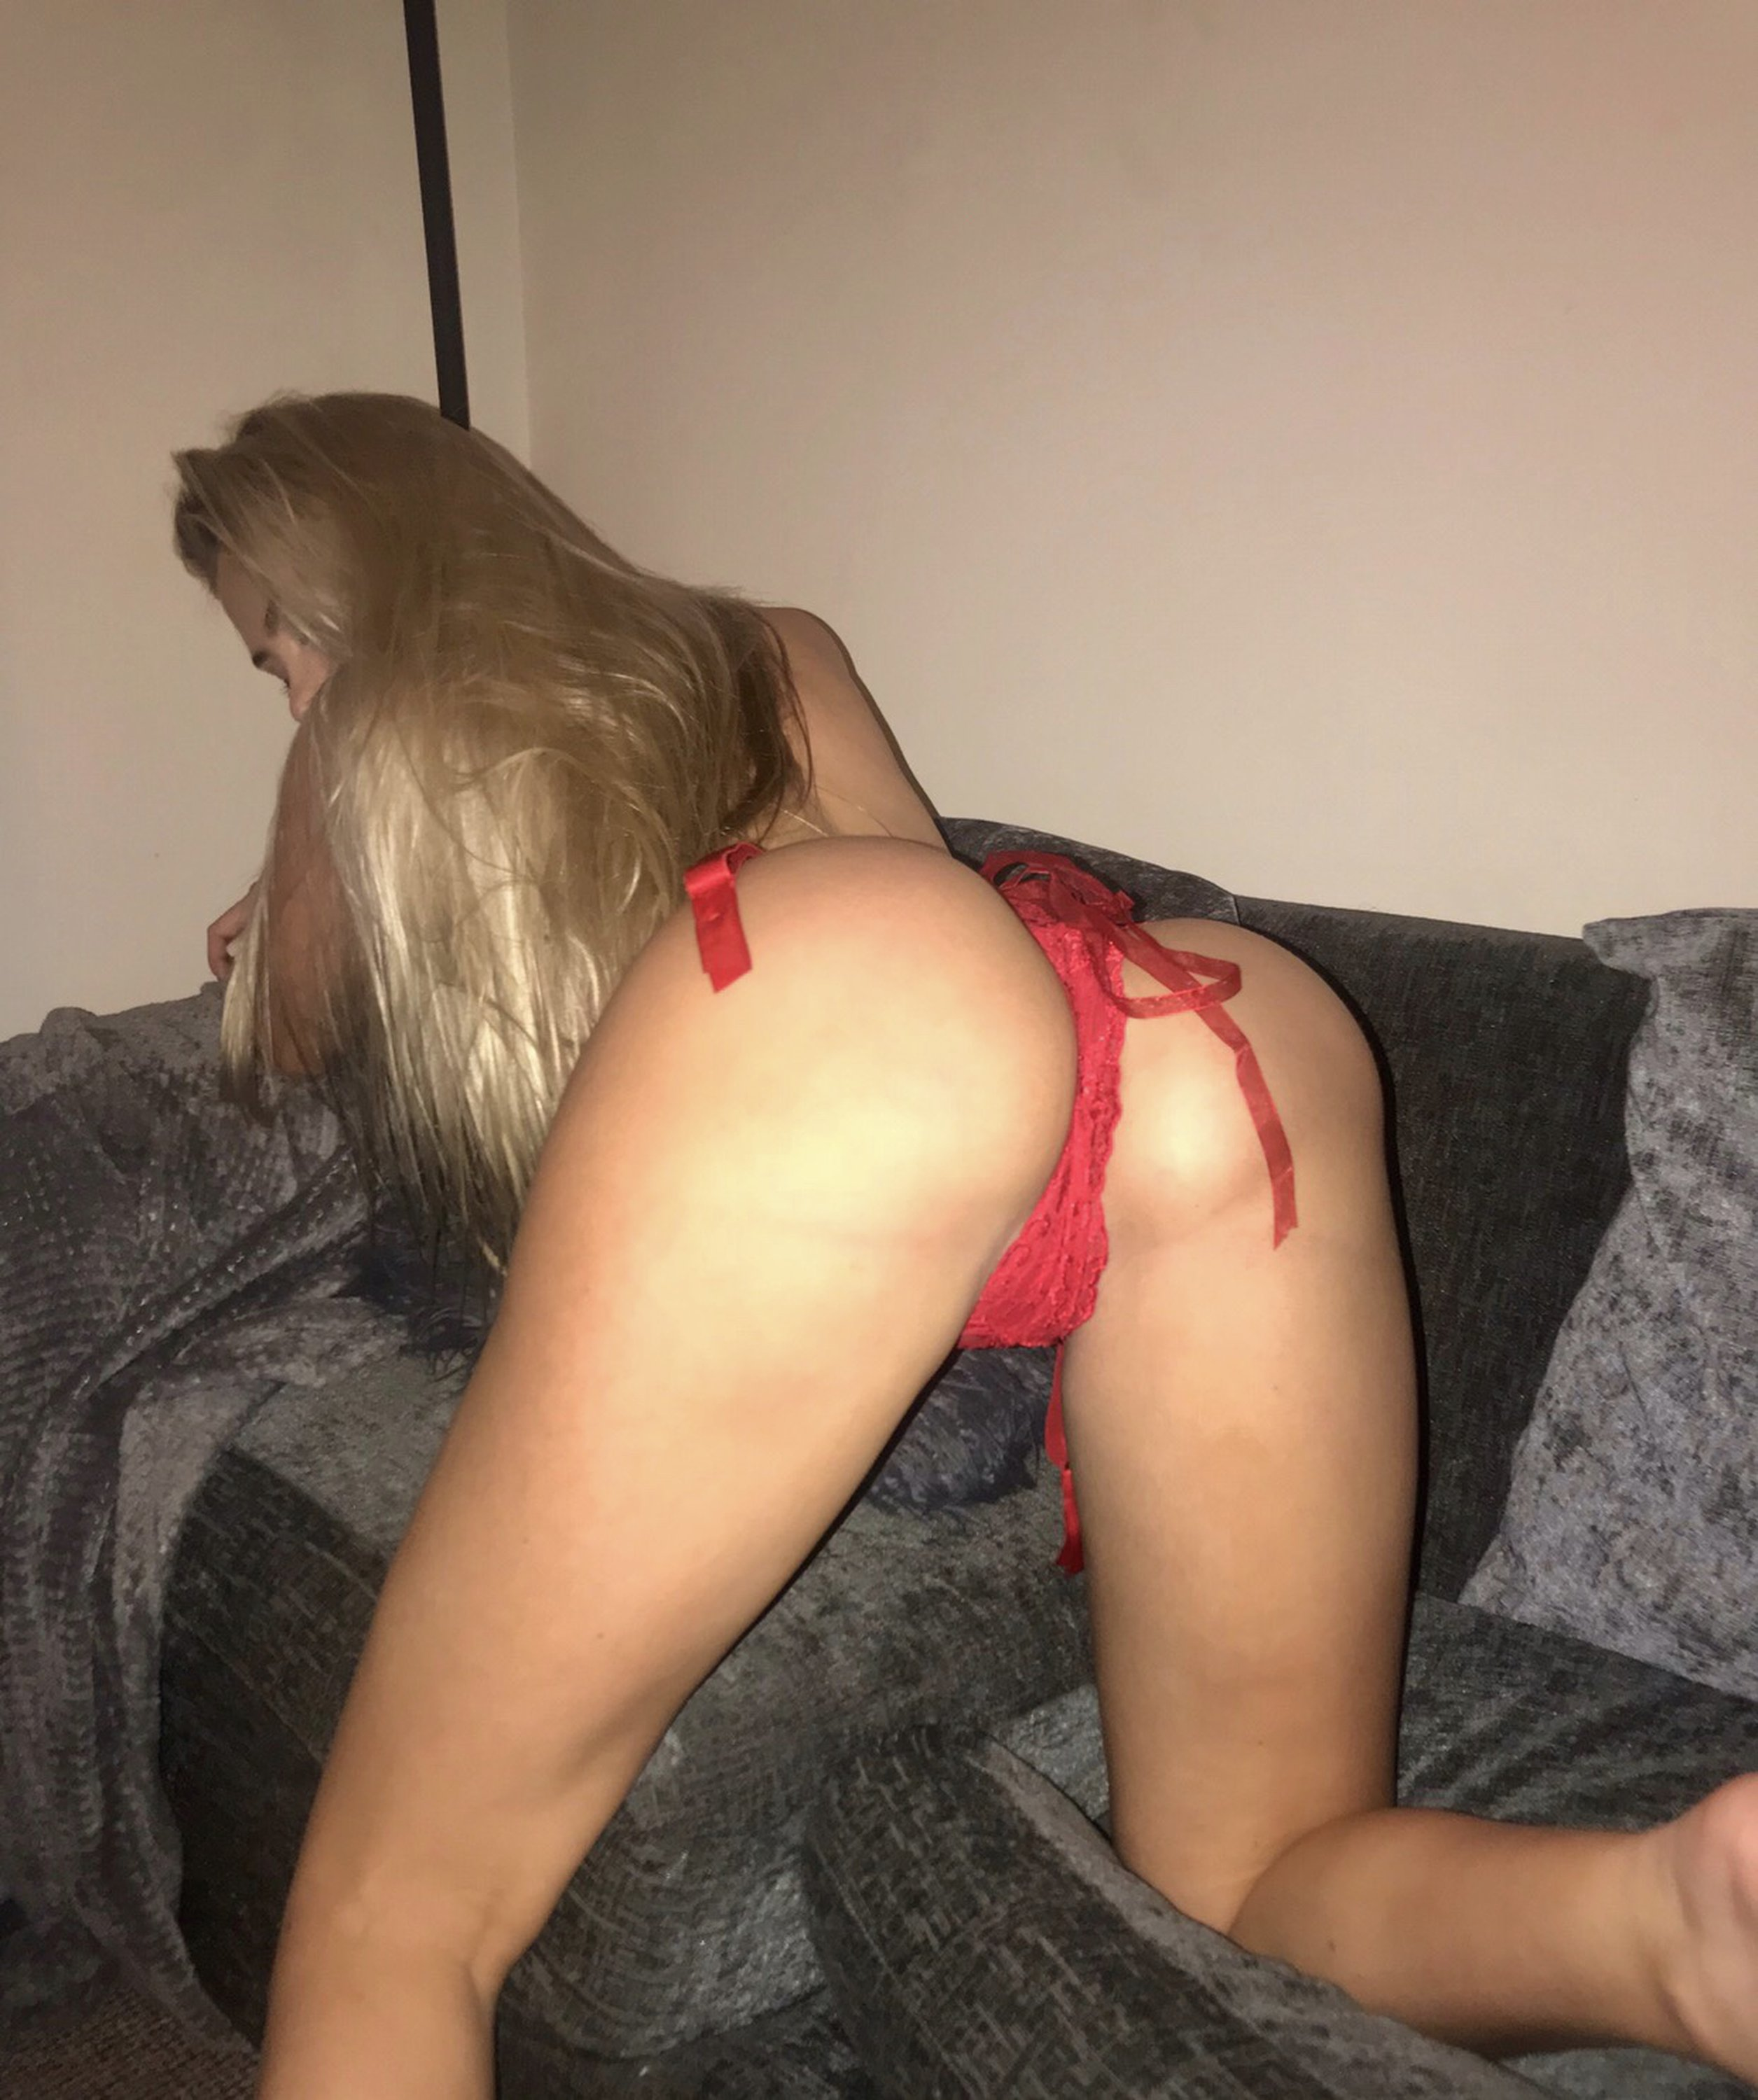 Lucy Nicholson Leaked 0240